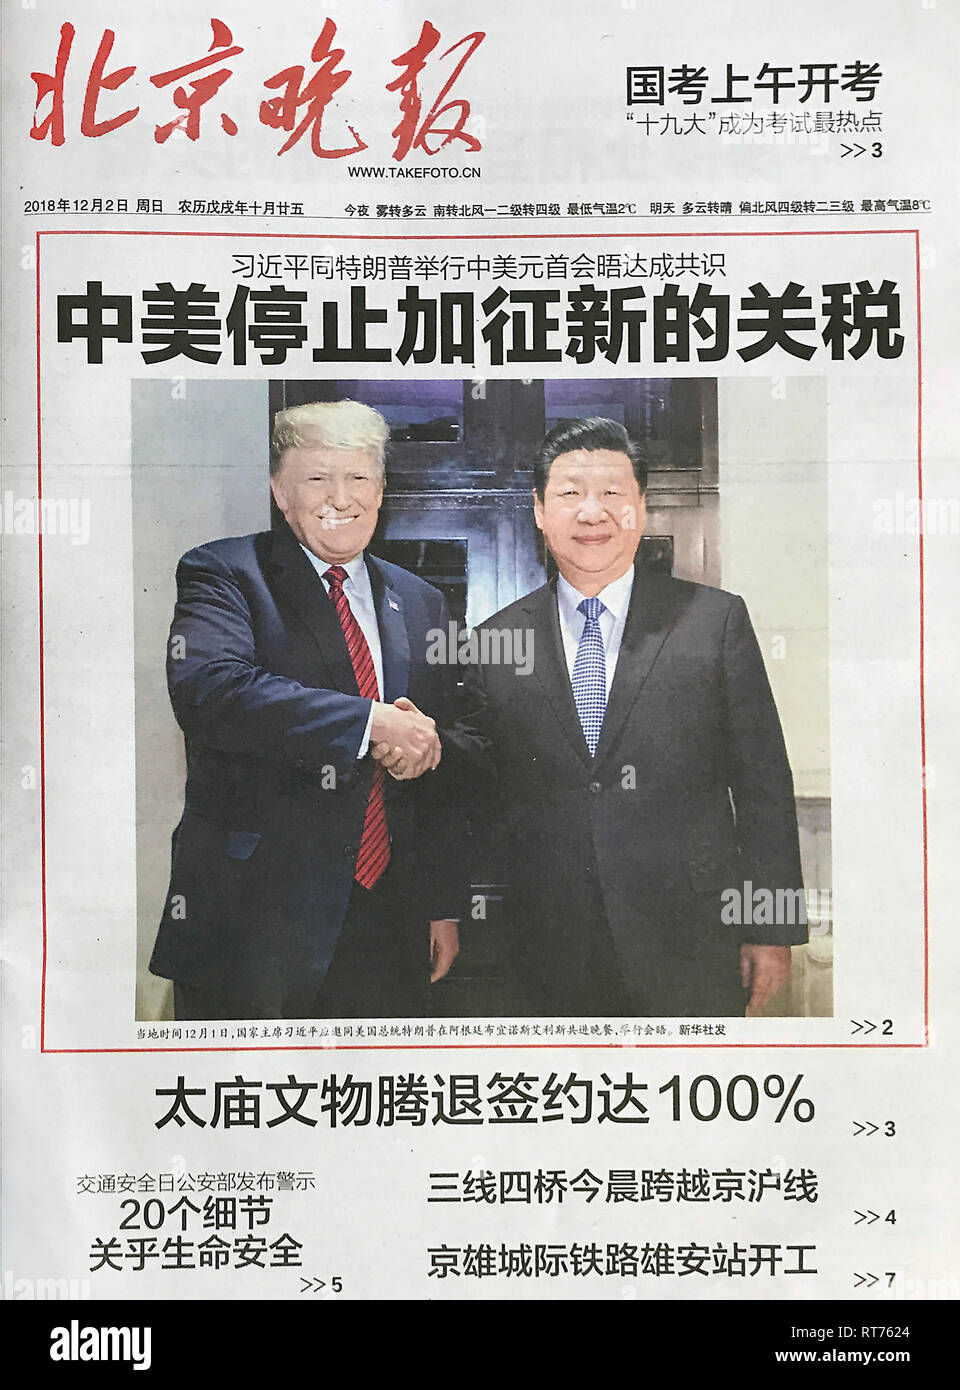 Beijing, China. 2nd Dec, 2018. One of China's top, government-run newspapers featuring a front page story on G20 trade talks between the U.S. and China (U.S. President Donald Trump (L) and Chinese President Xi Jinping), is sold in Beijing on December 2, 2018. The U.S. and China agreed to halt additional tariffs for 90 days. Credit: Todd Lee/ZUMA Wire/ZUMAPRESS.com/Alamy Live News - Stock Image